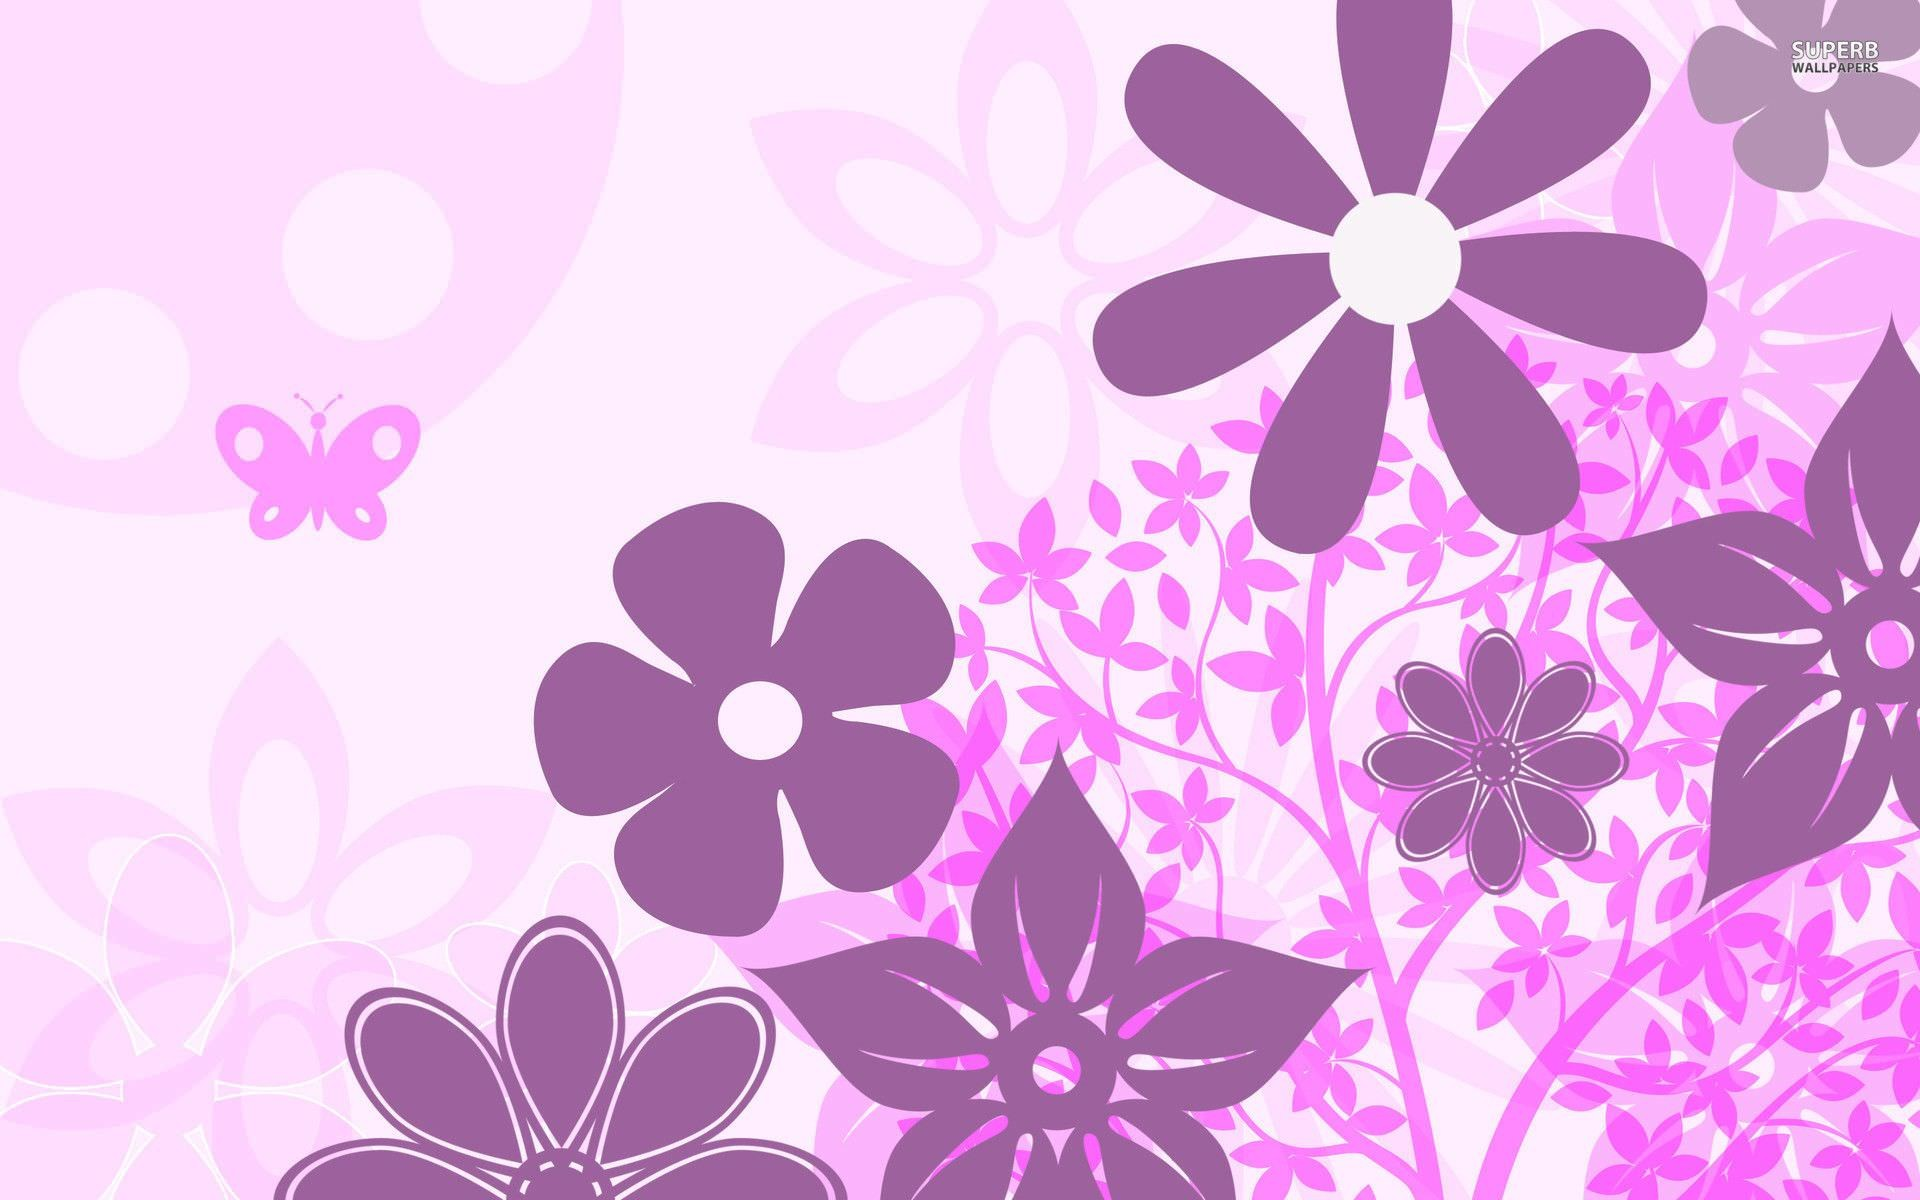 Purple flowers wallpapers 76 images 1920x1080 pink and purple flowers 705365 thecheapjerseys Images